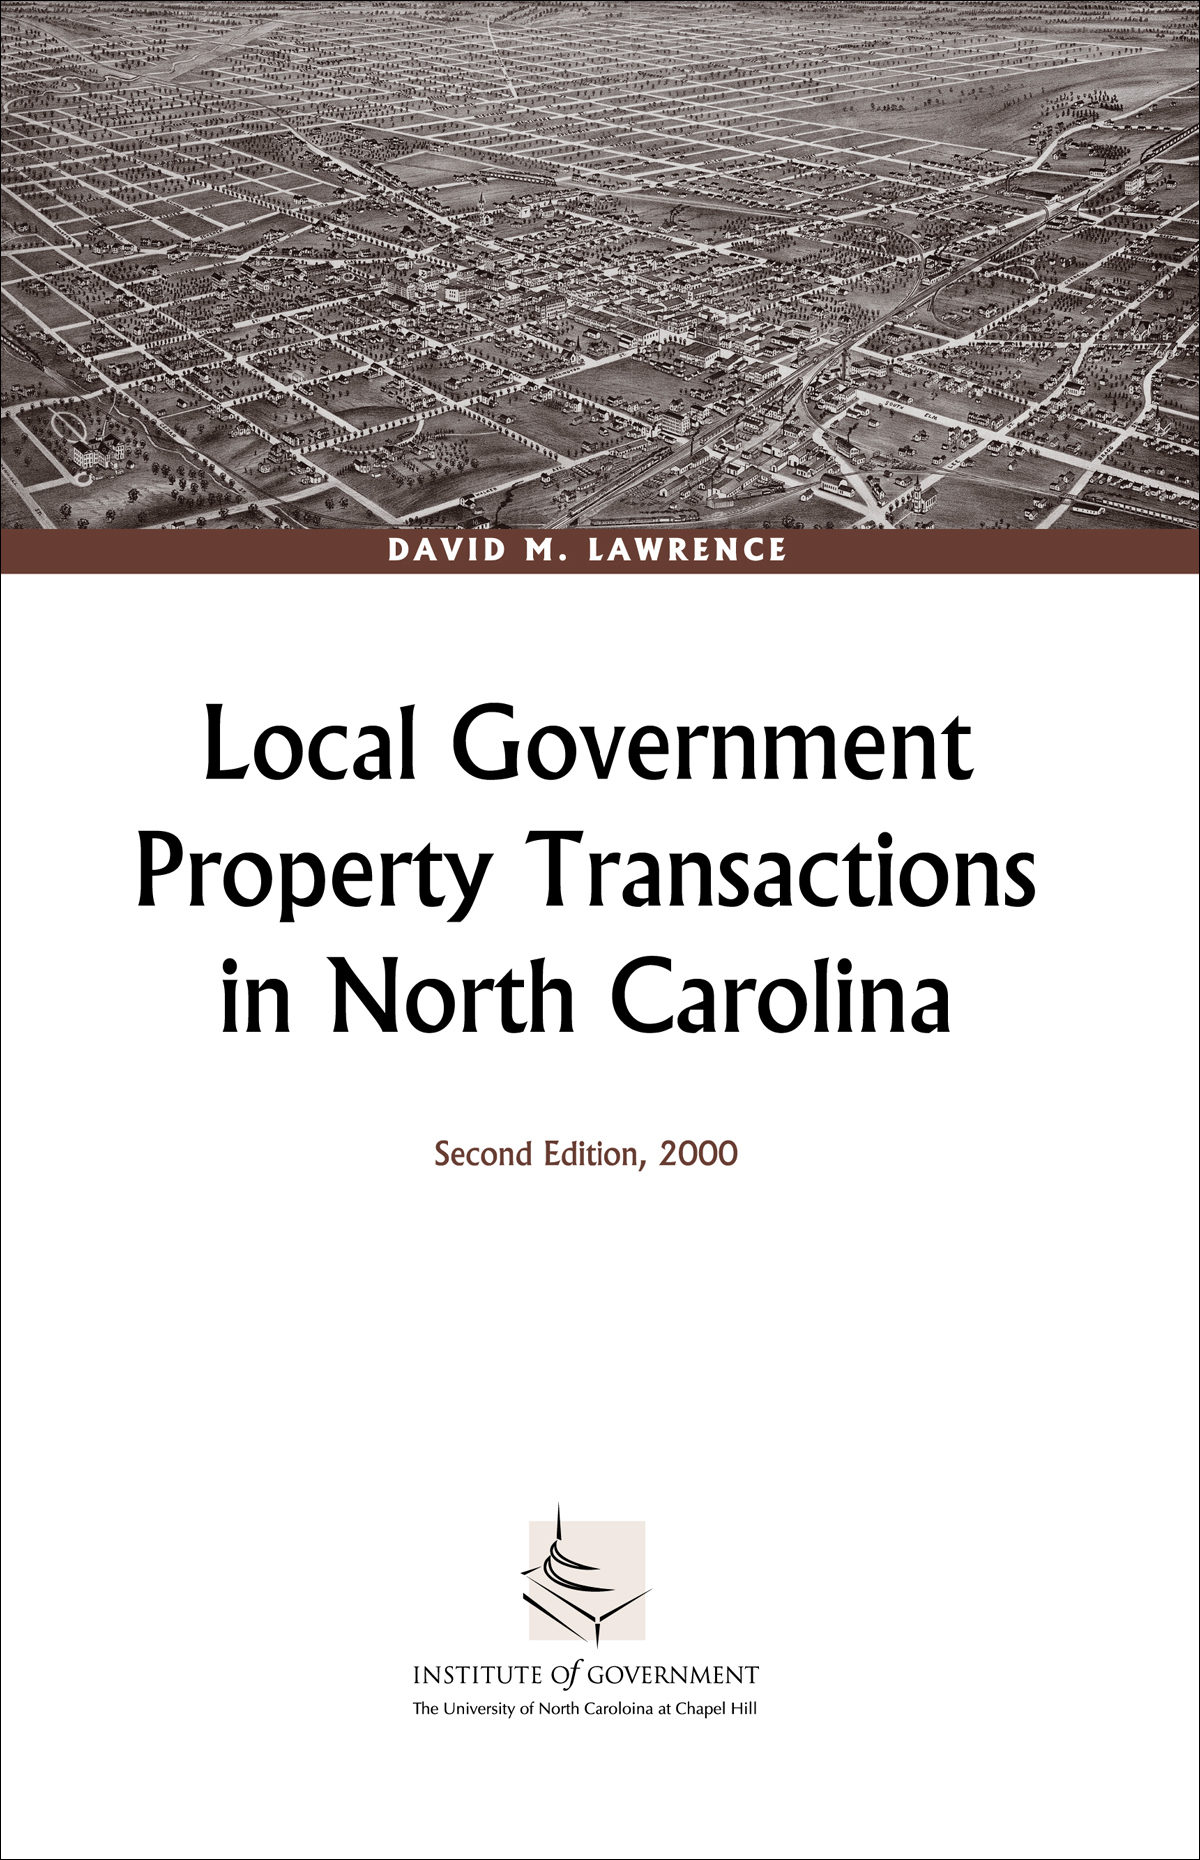 Local Government Property Transactions in North Carolina, Second Edition, 2000